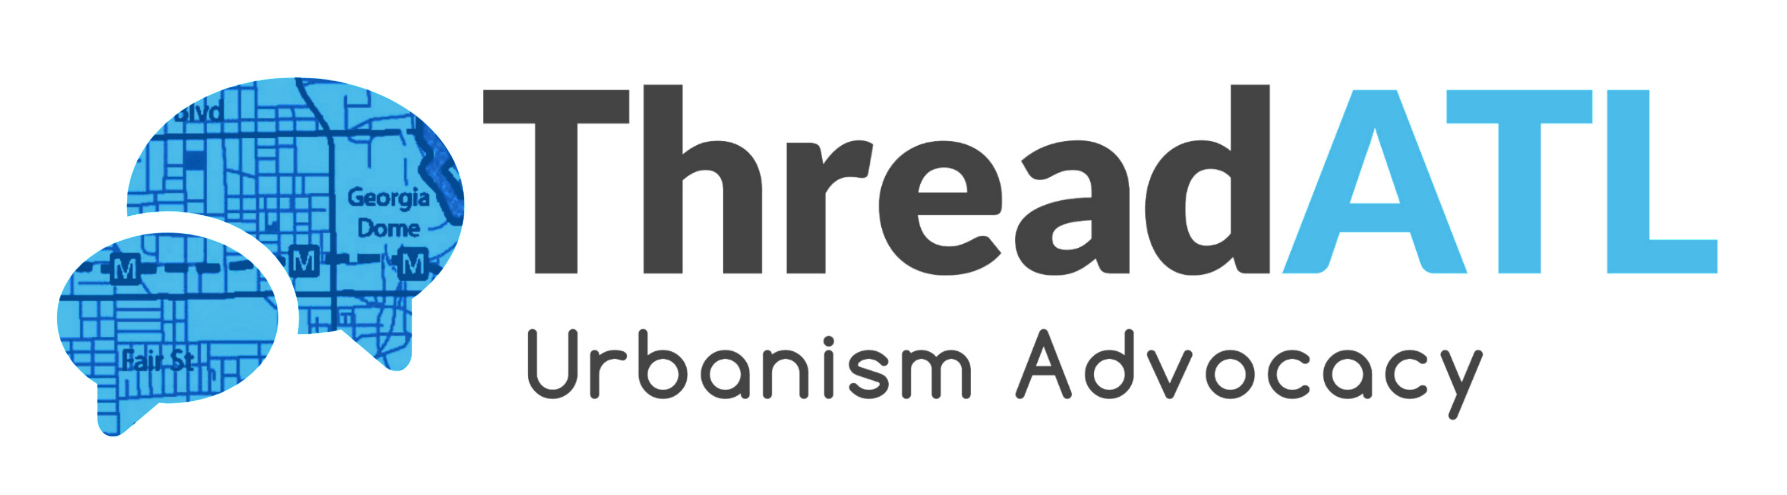 ThreadATL Logo